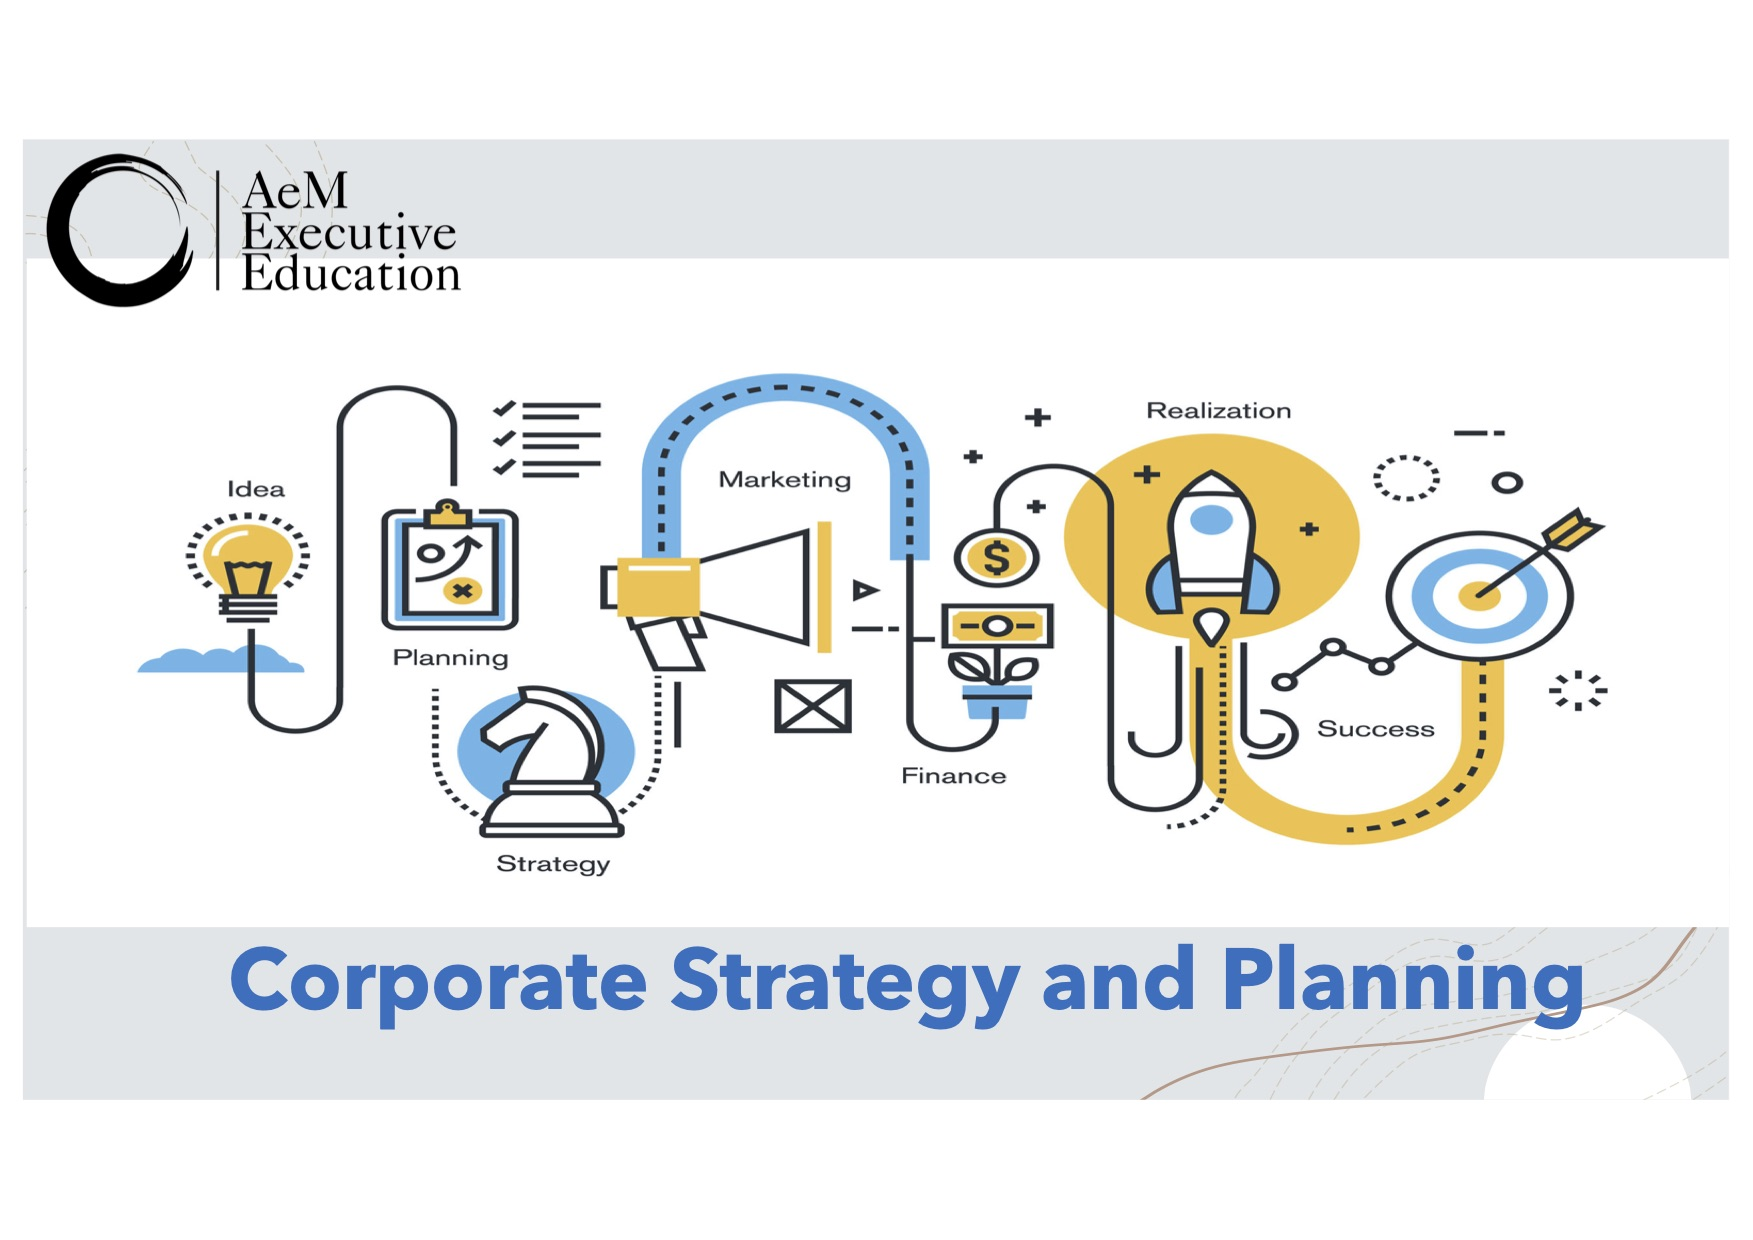 Corporate Strategy and Planning